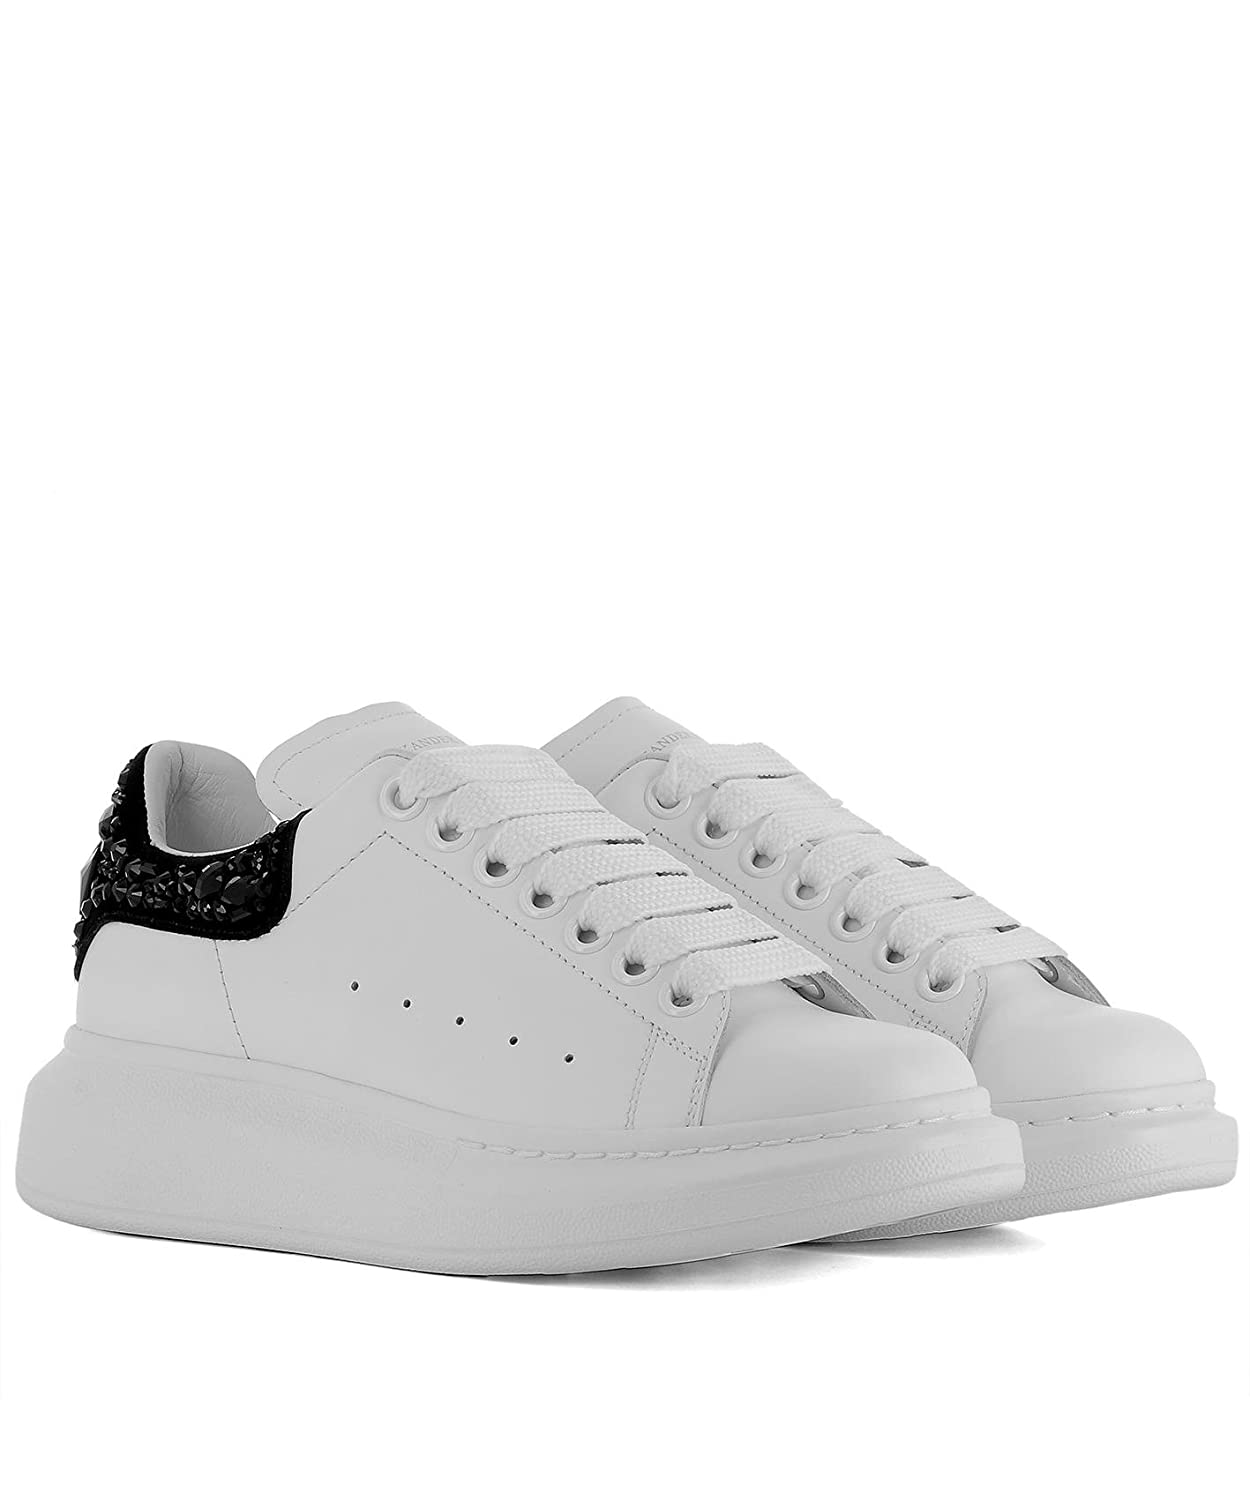 Alexander McQueen - Zapatillas para Mujer Weiß IT - Marke Größe, Color, Talla 38.5 IT - Marke Größe 38.5: Amazon.es: Zapatos y complementos